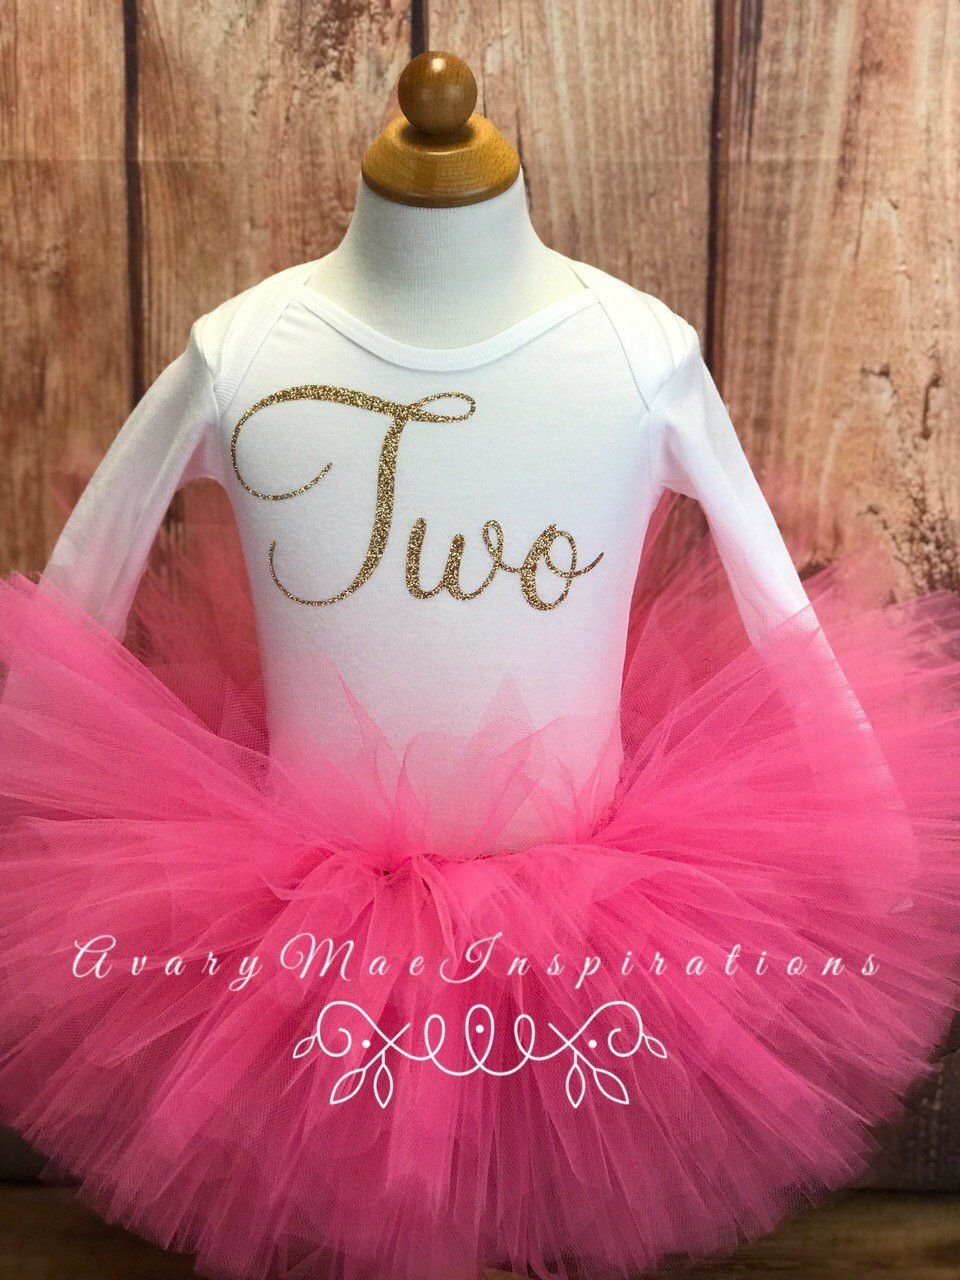 Two Year Old Birthday Outfit for Girls, Turning 2 Birthday